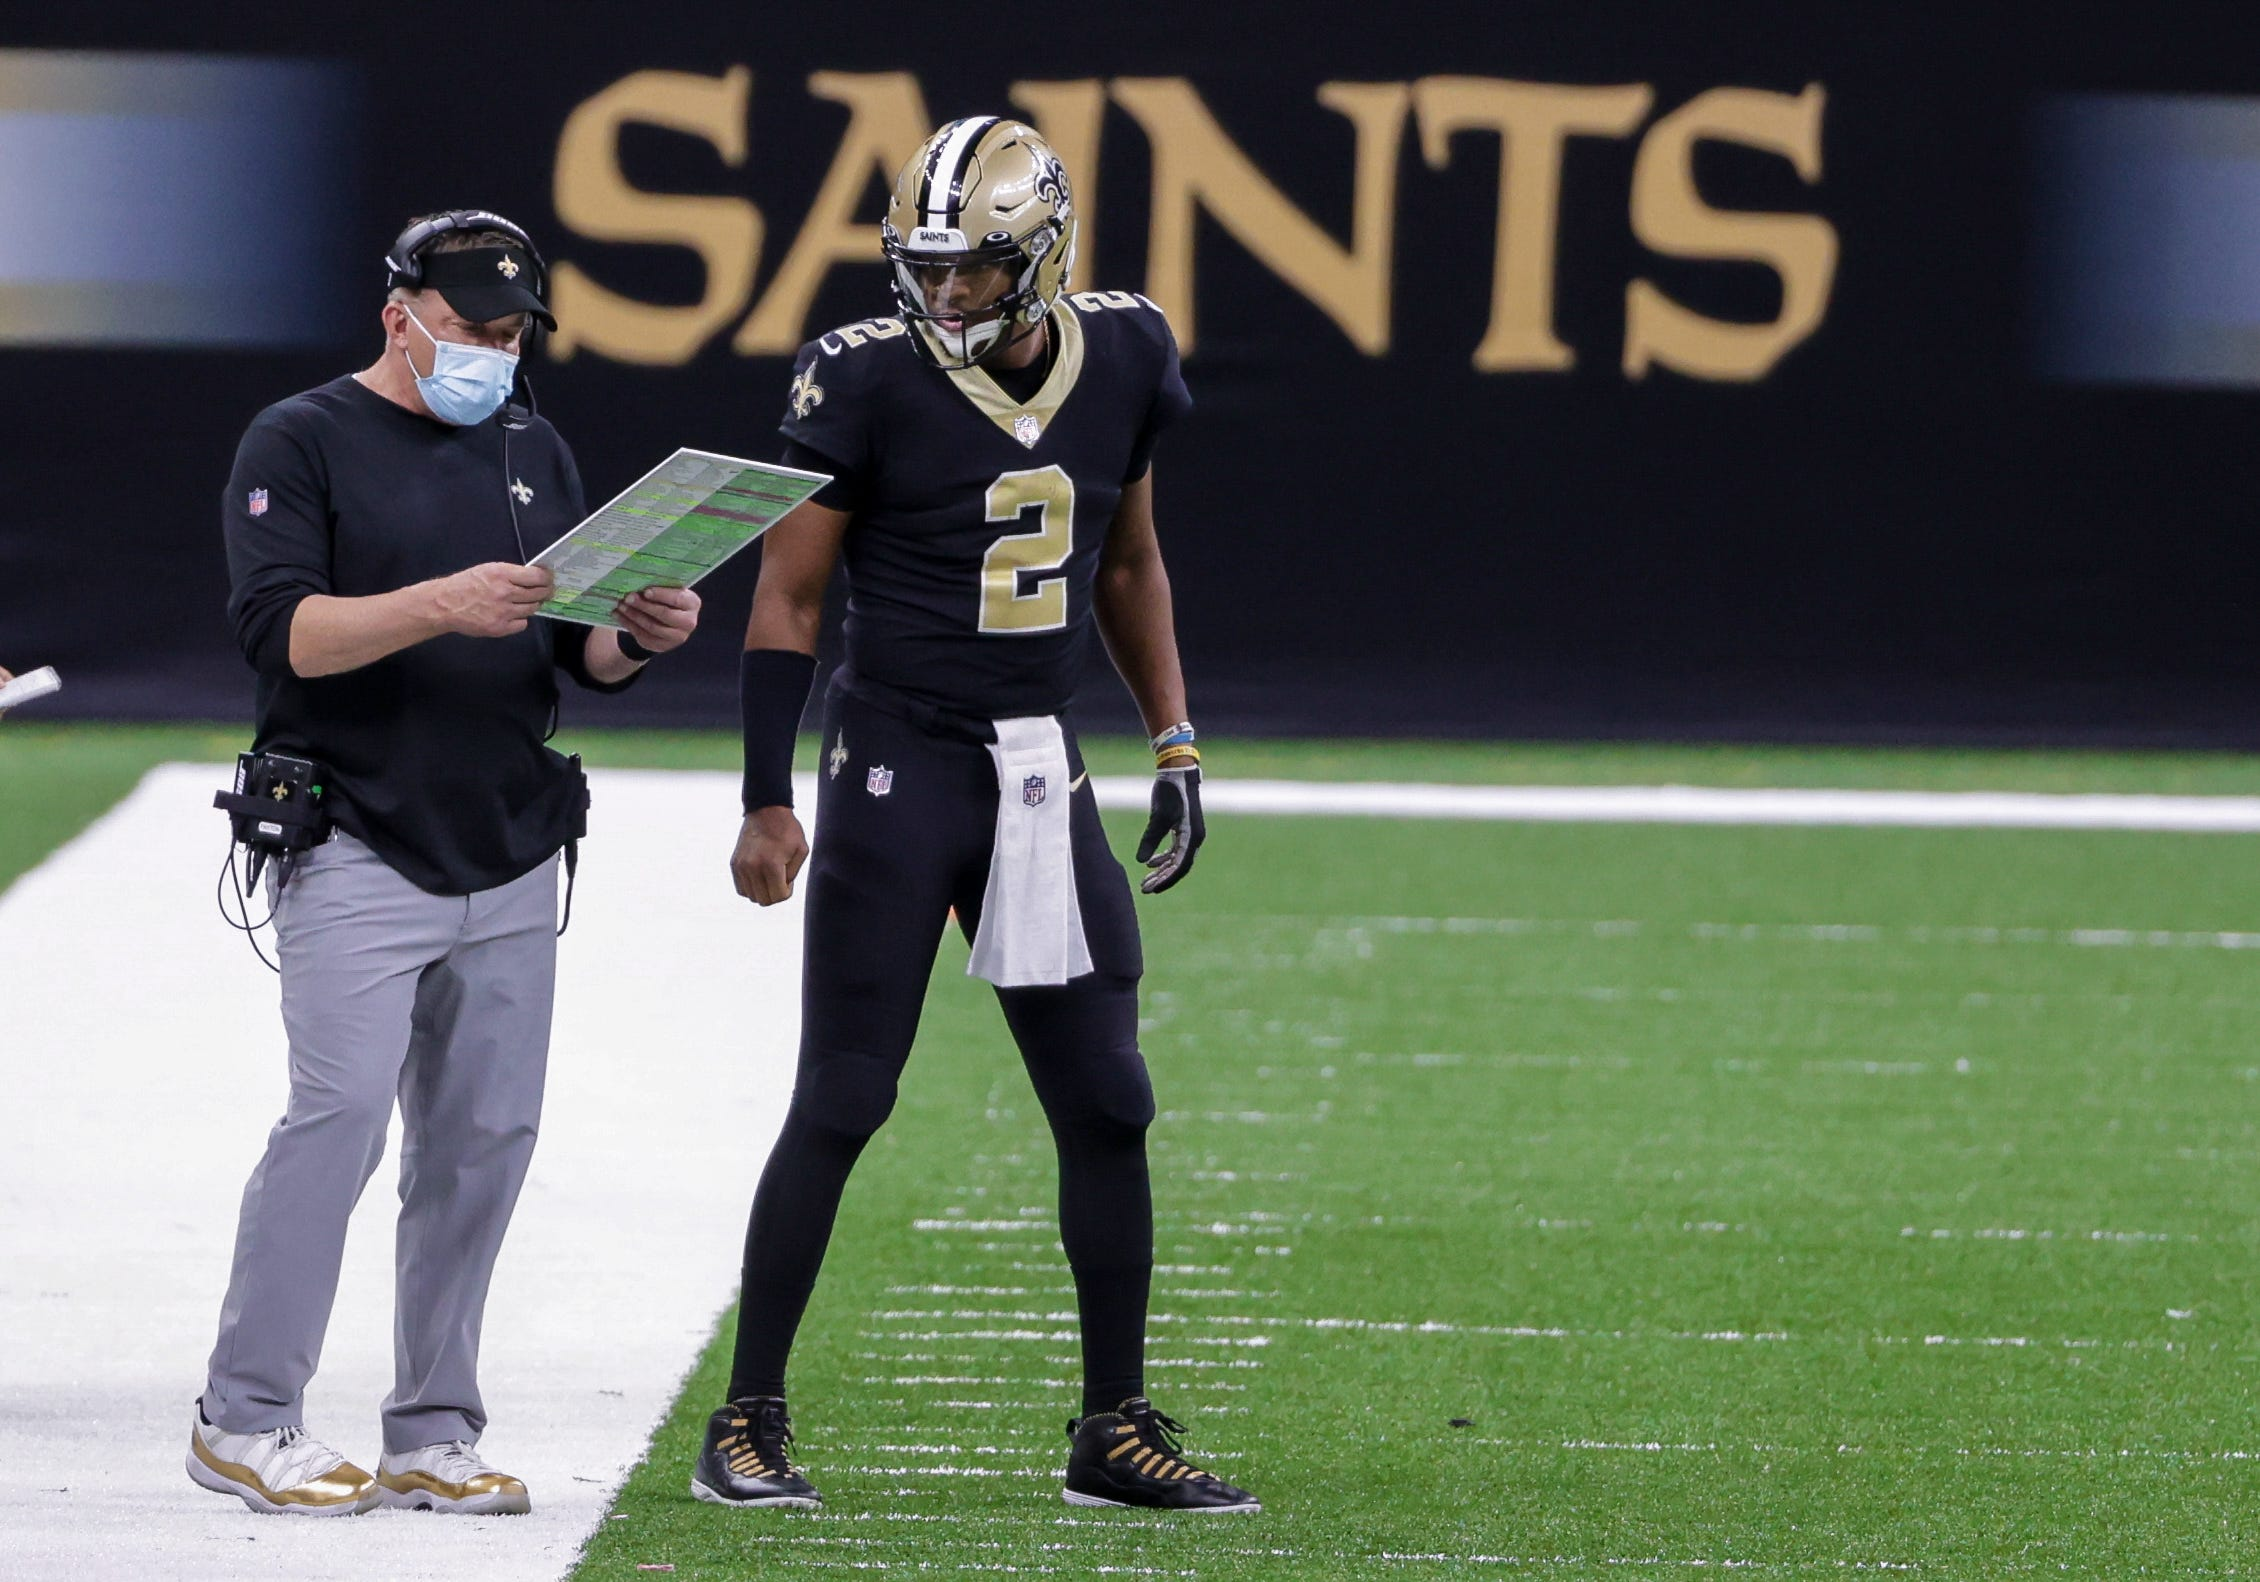 Drew Brees explains why Jameis Winston could be starting QB with Saints